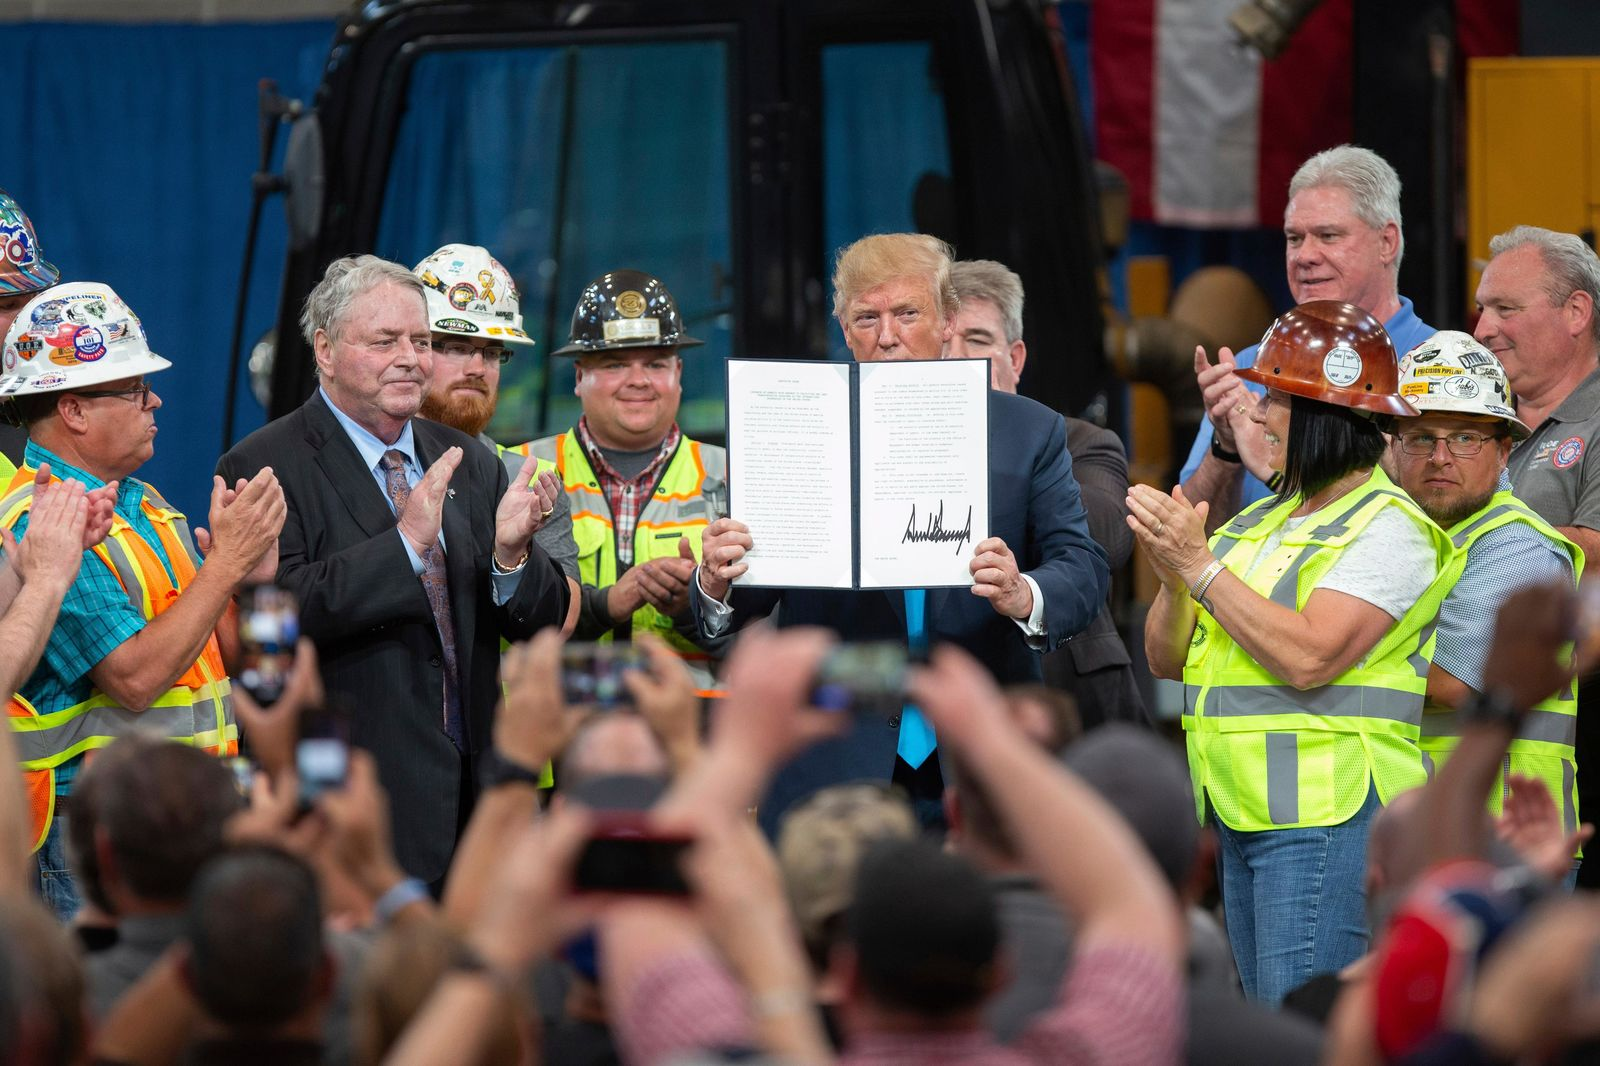 FILE - In this April 10, 2019, file photo, President Donald Trump holds up an executive order on energy and infrastructure after signing it at the International Union of Operating Engineers International Training and Education Center in Crosby, Texas. Trump is now three for three. Each year of his presidency, he has issued more executive orders than did former President Barack Obama during the same time-span. (AP Photo/Juan DeLeon, File)